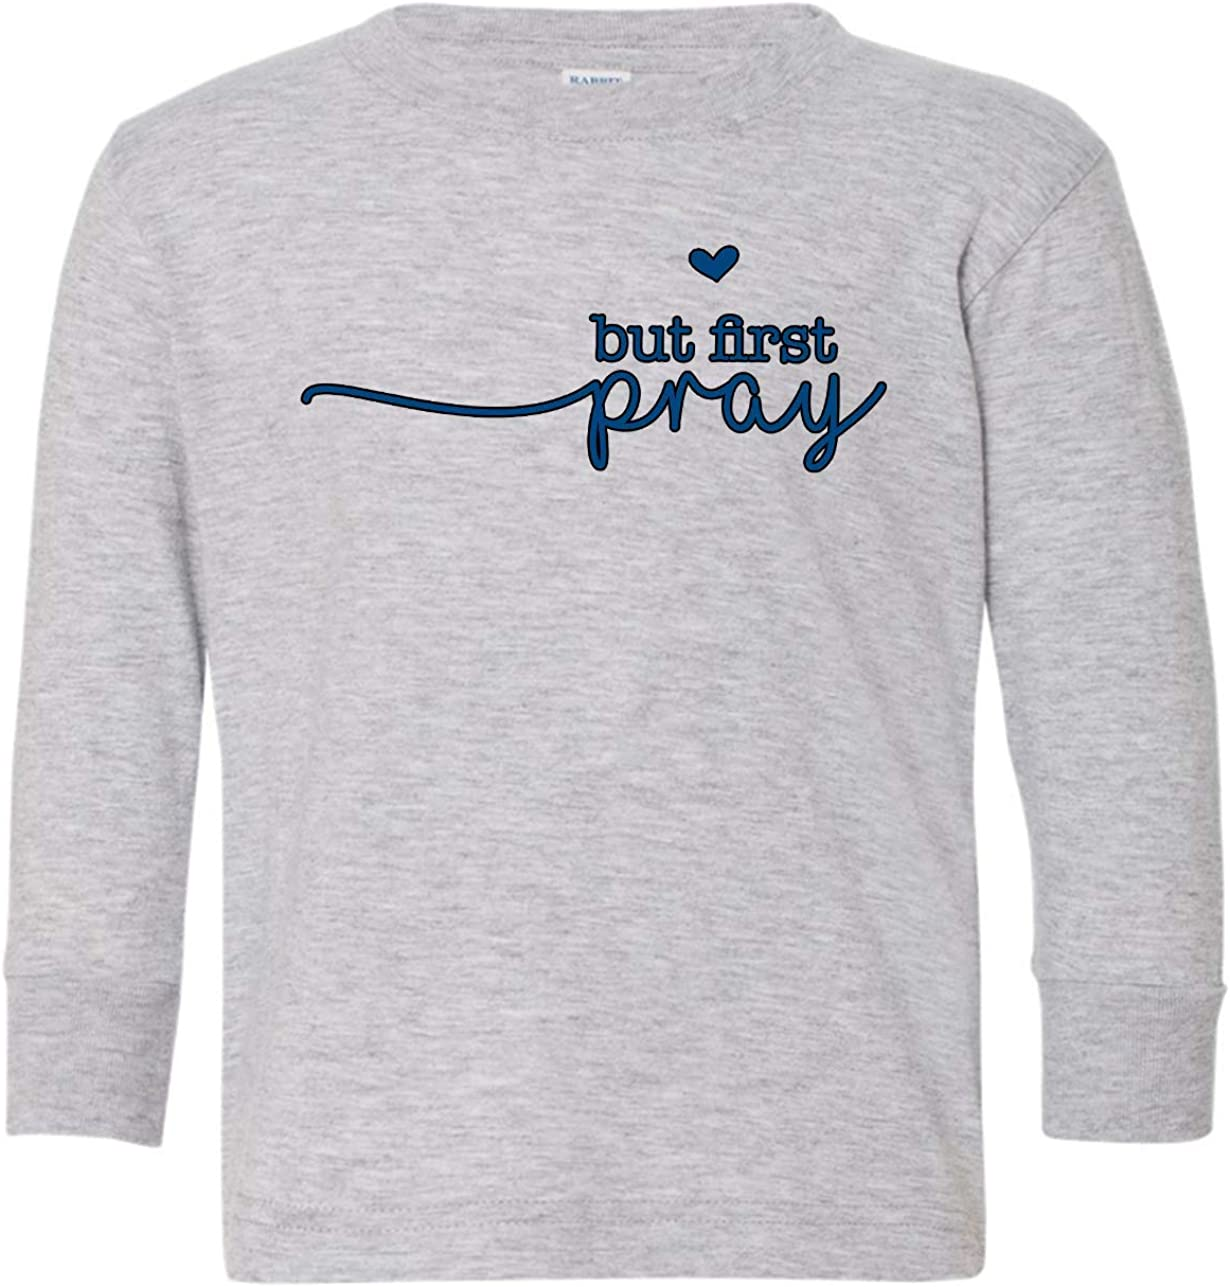 Tenacitee Toddlers But First Pray Long Sleeve T-Shirt